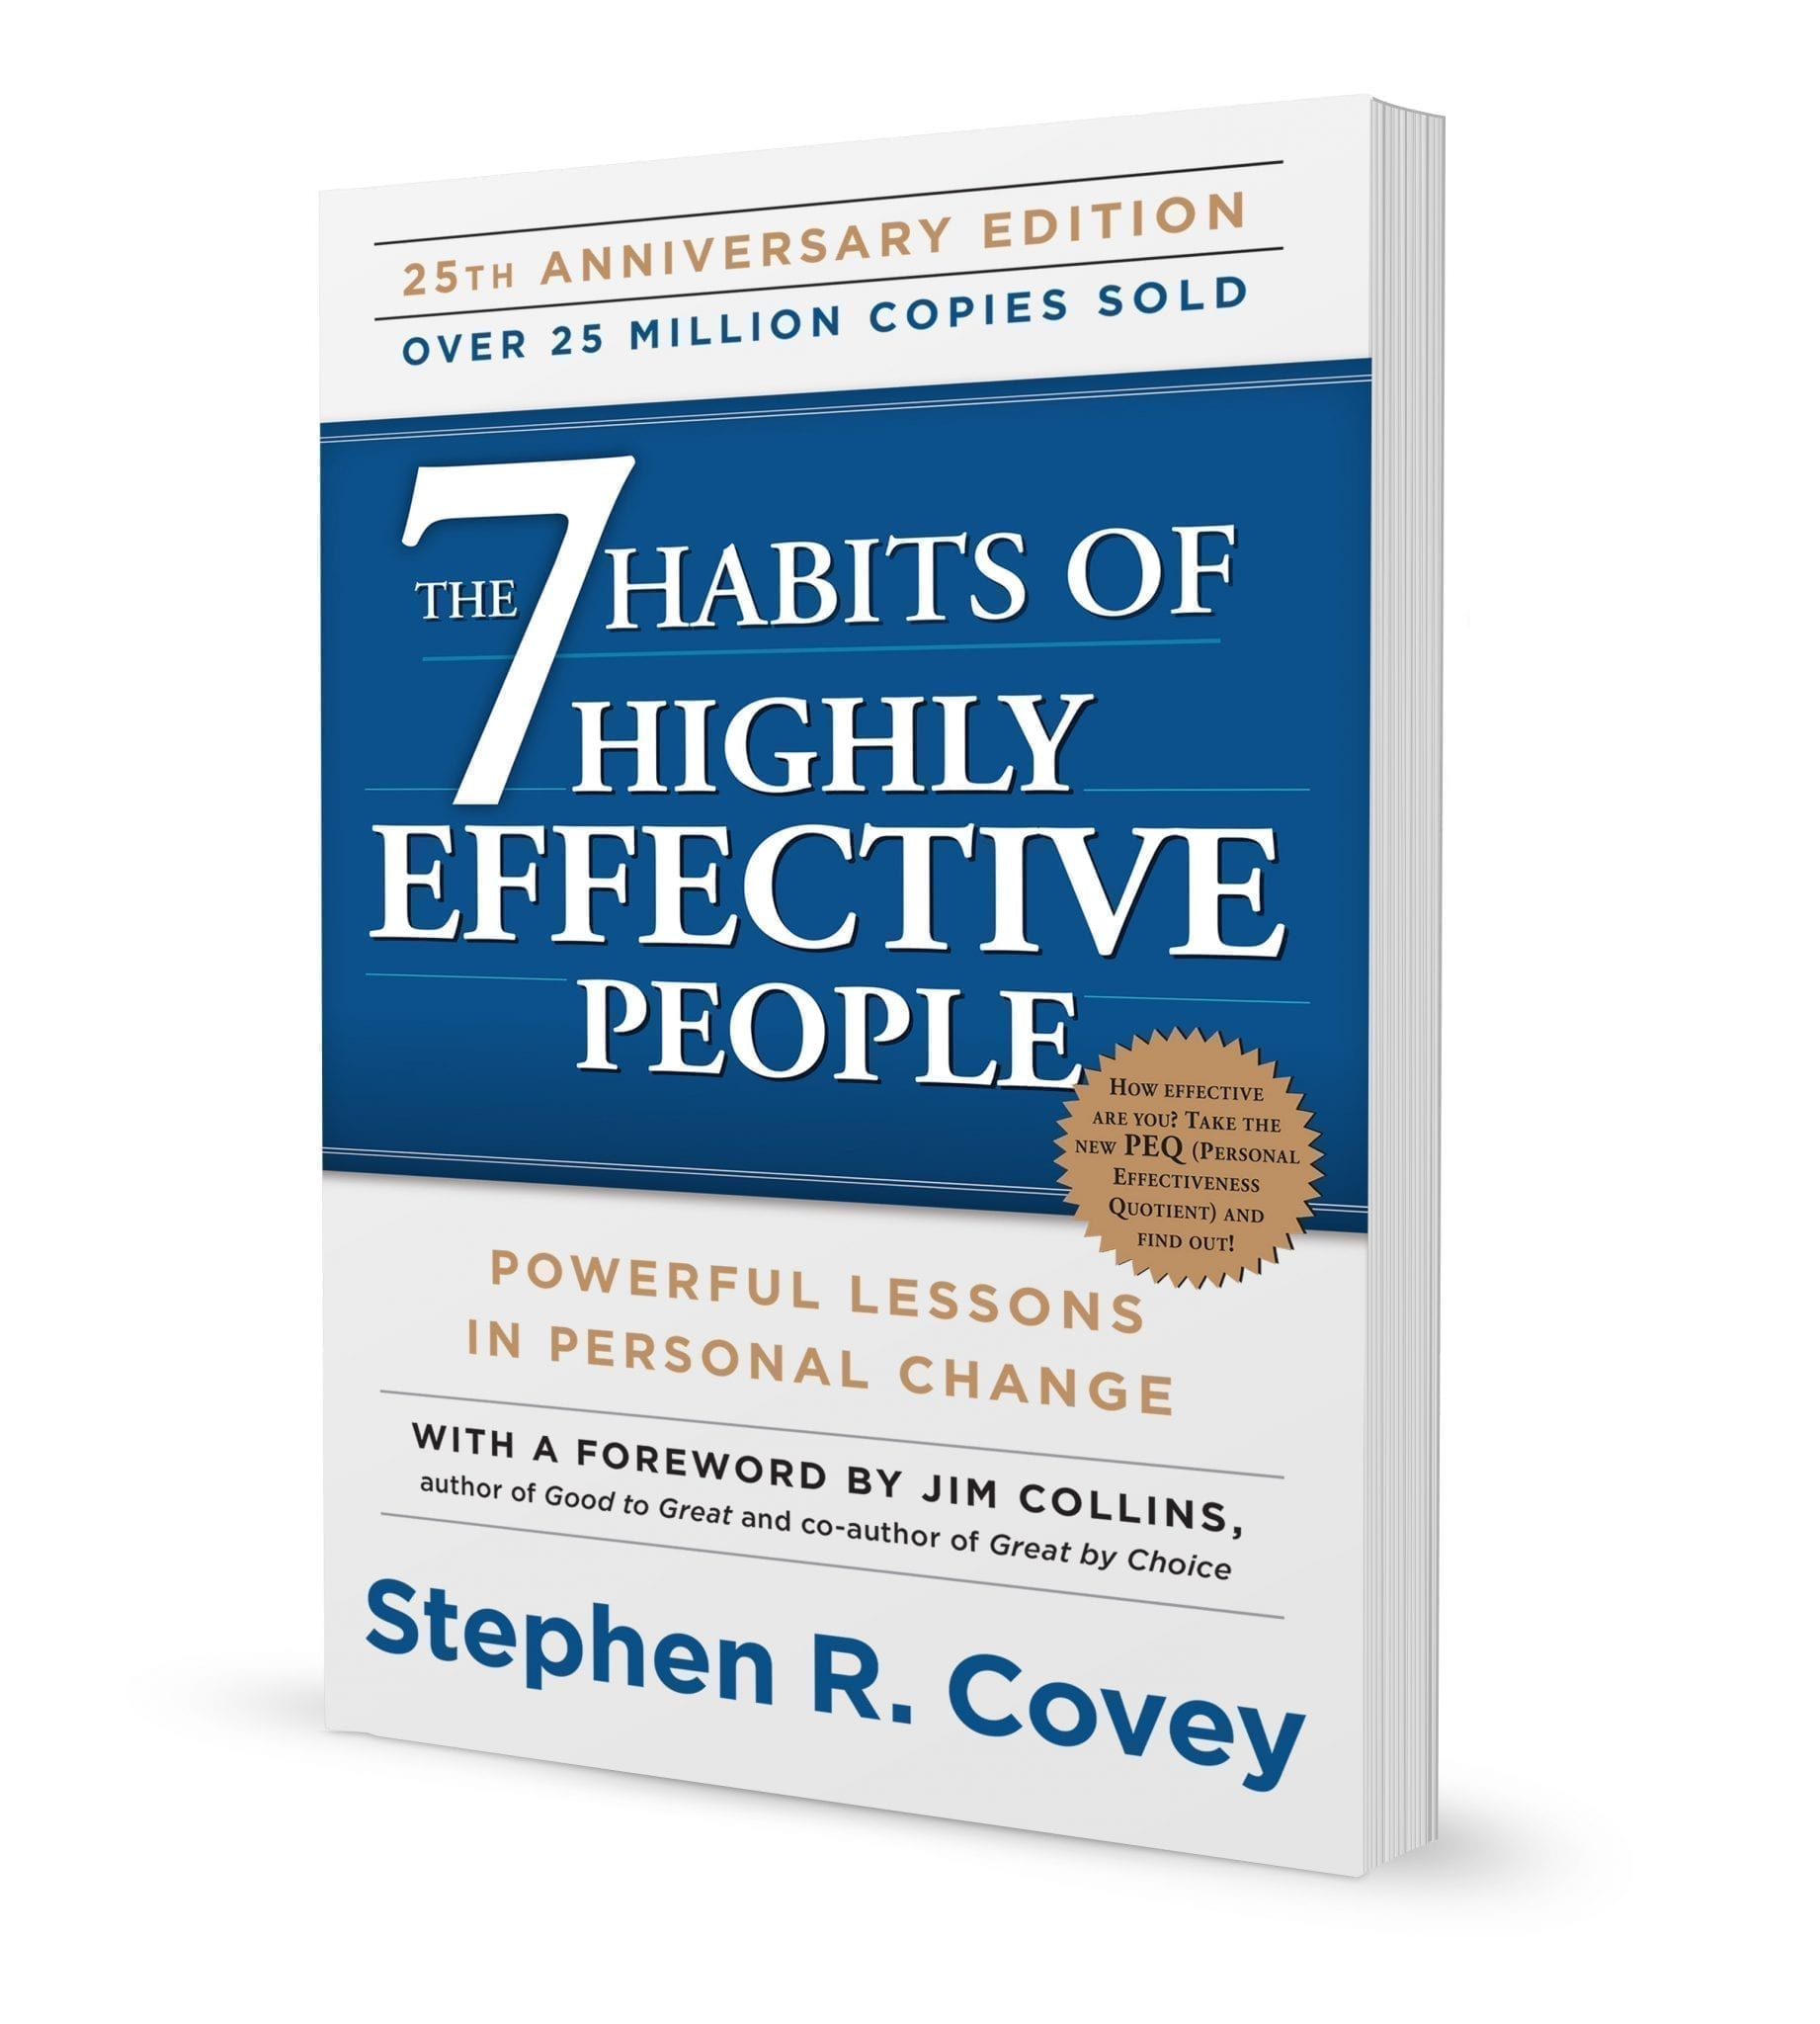 The 7 Habits of Highly Effective People book front cover